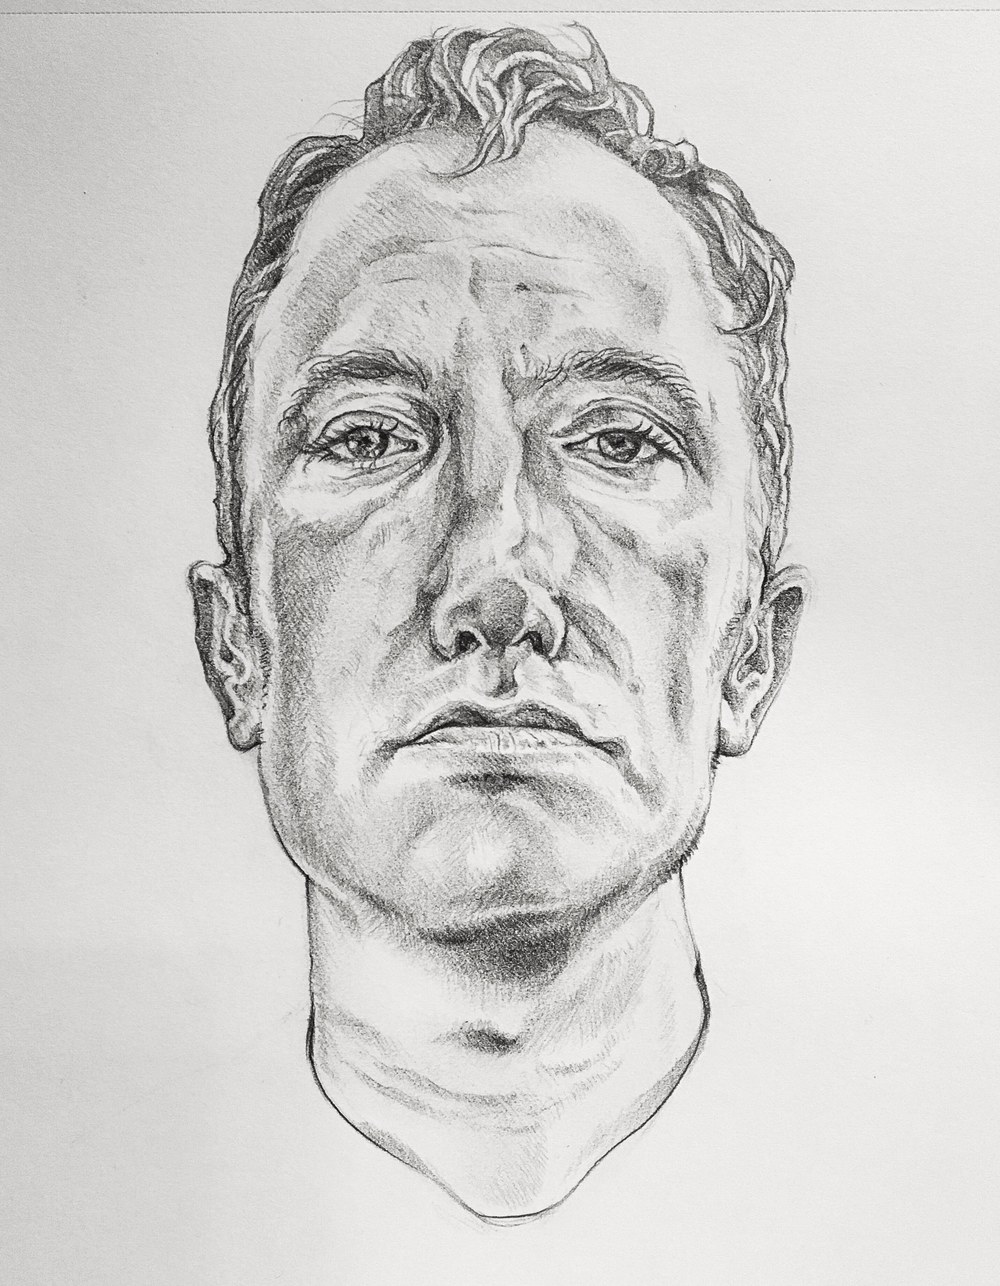 self-portrait-in-pencil-072516.jpg